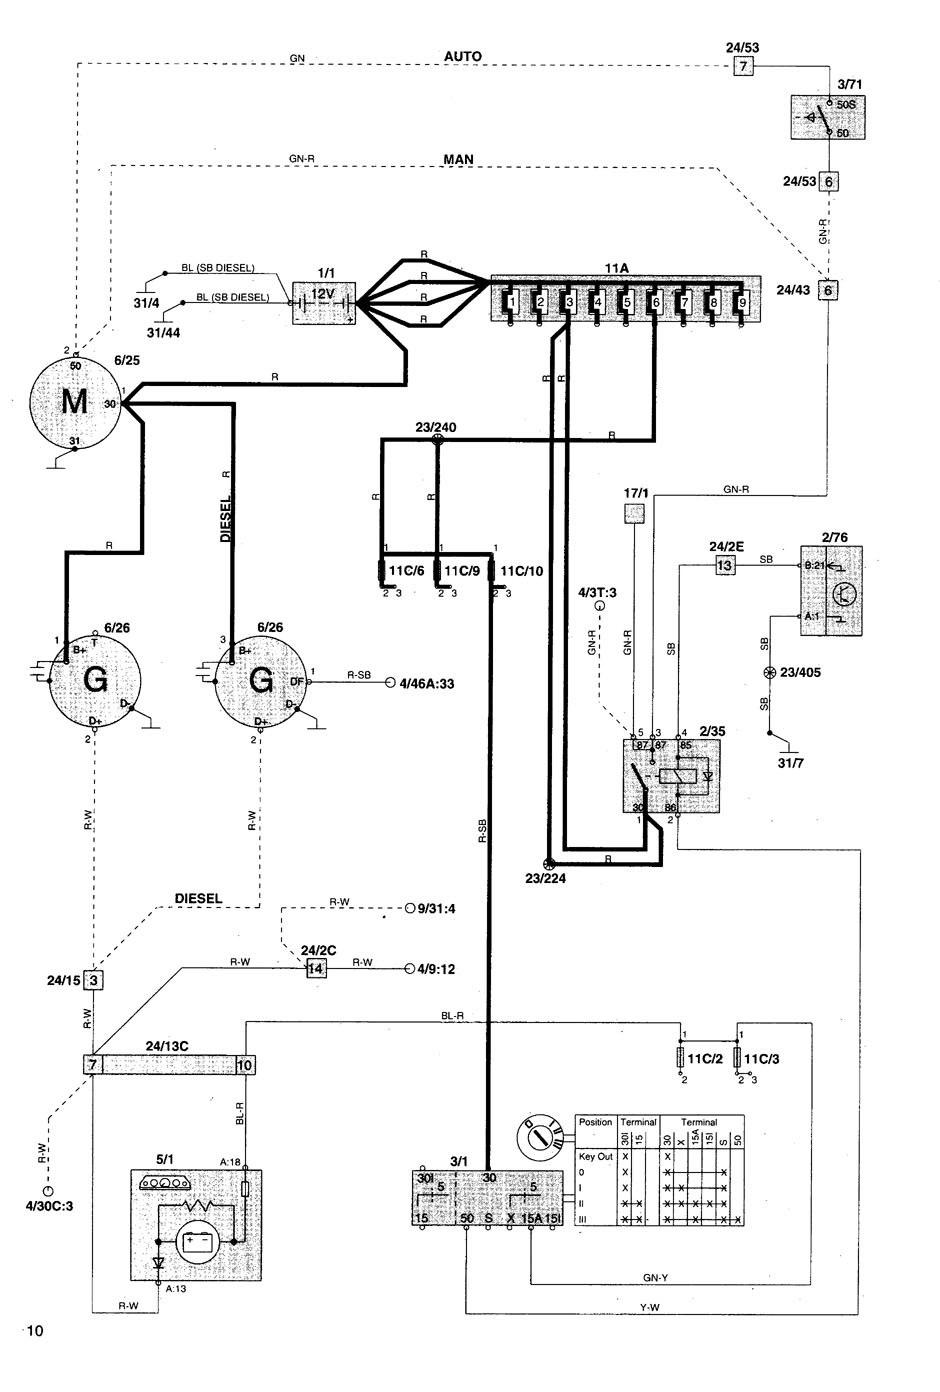 Volvo S80 Wiring Diagram Data Honda C70 Vhd Diagrams Change Your Idea With 2004